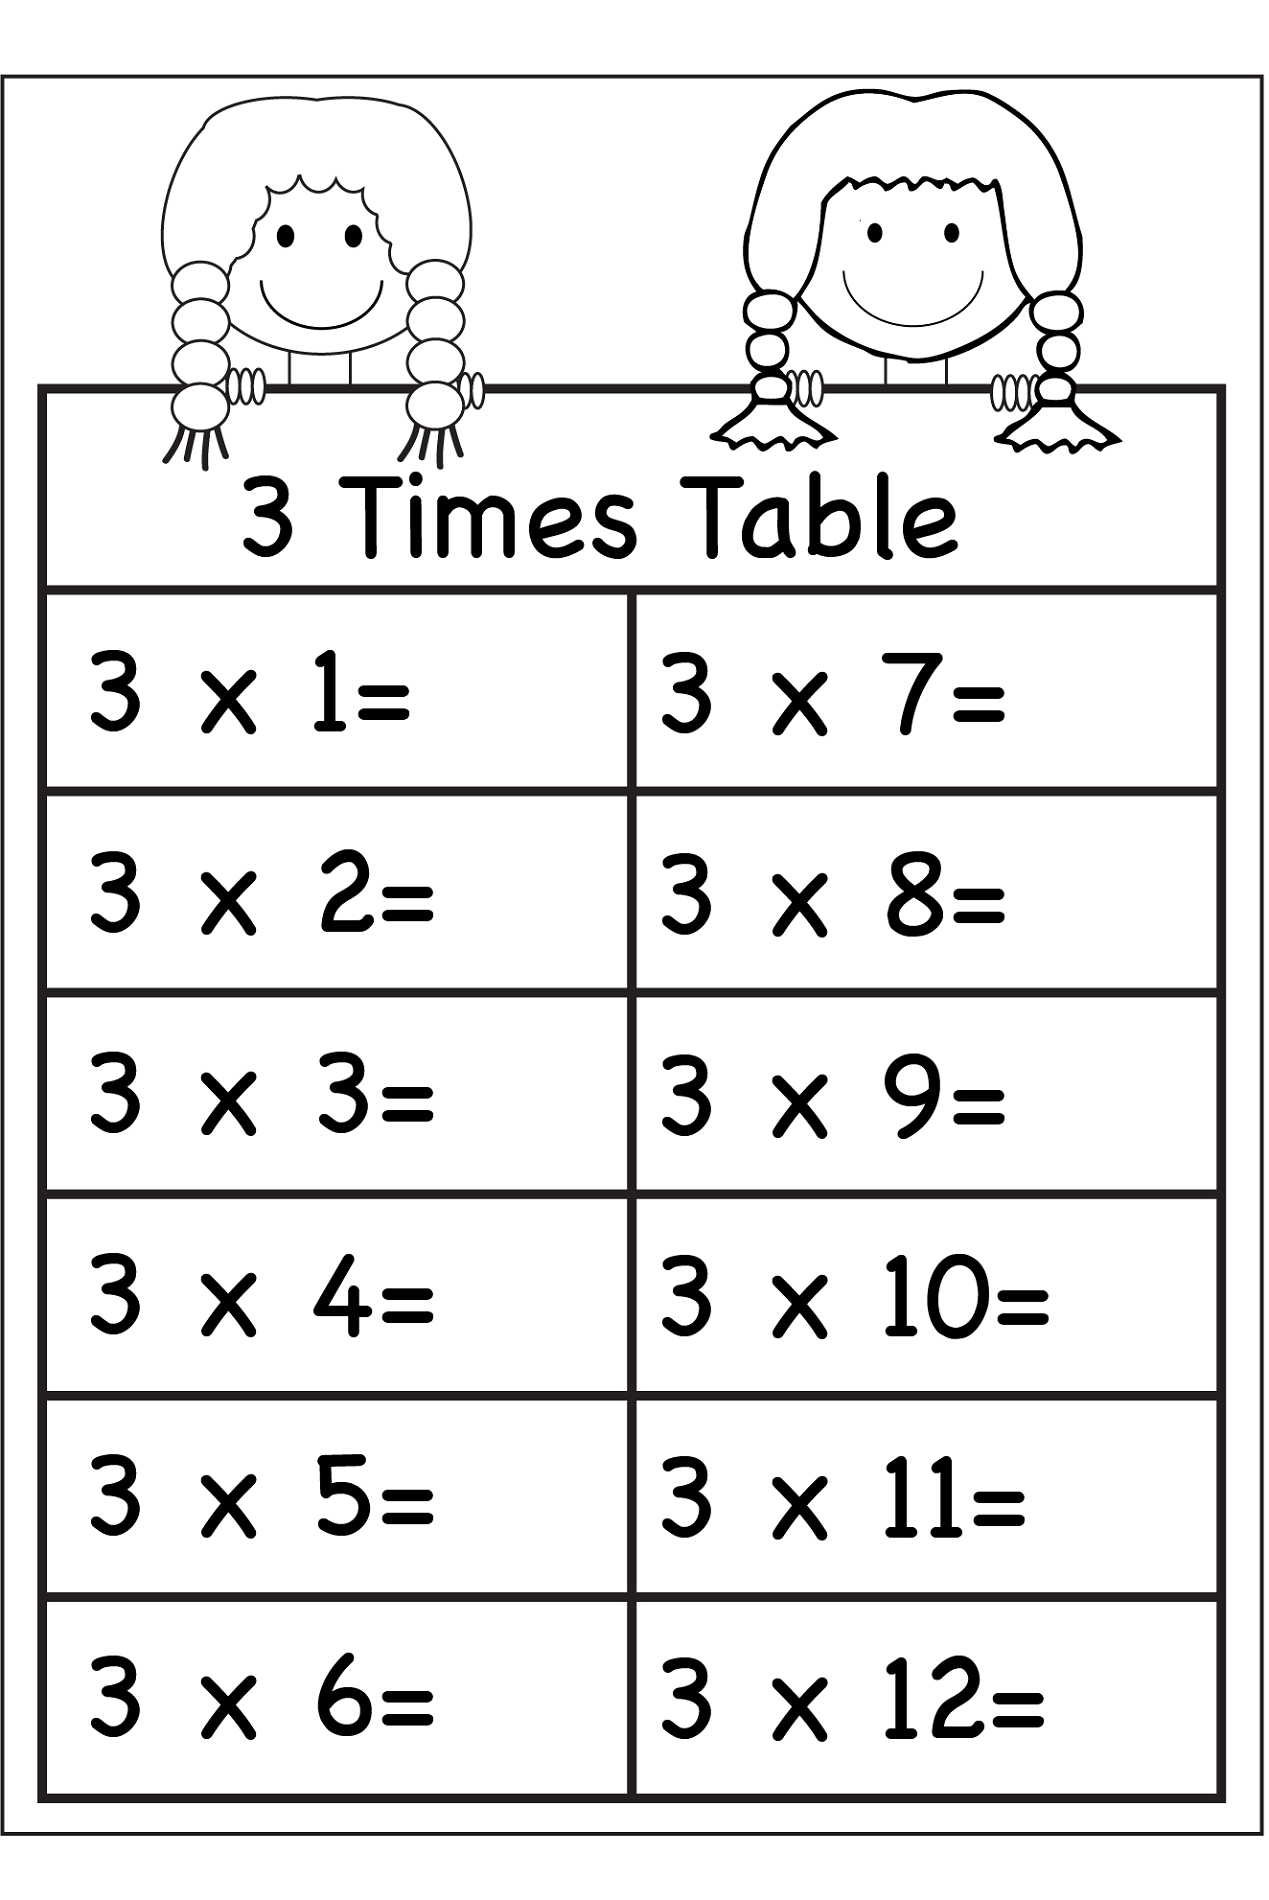 3 times tables worksheets for learning